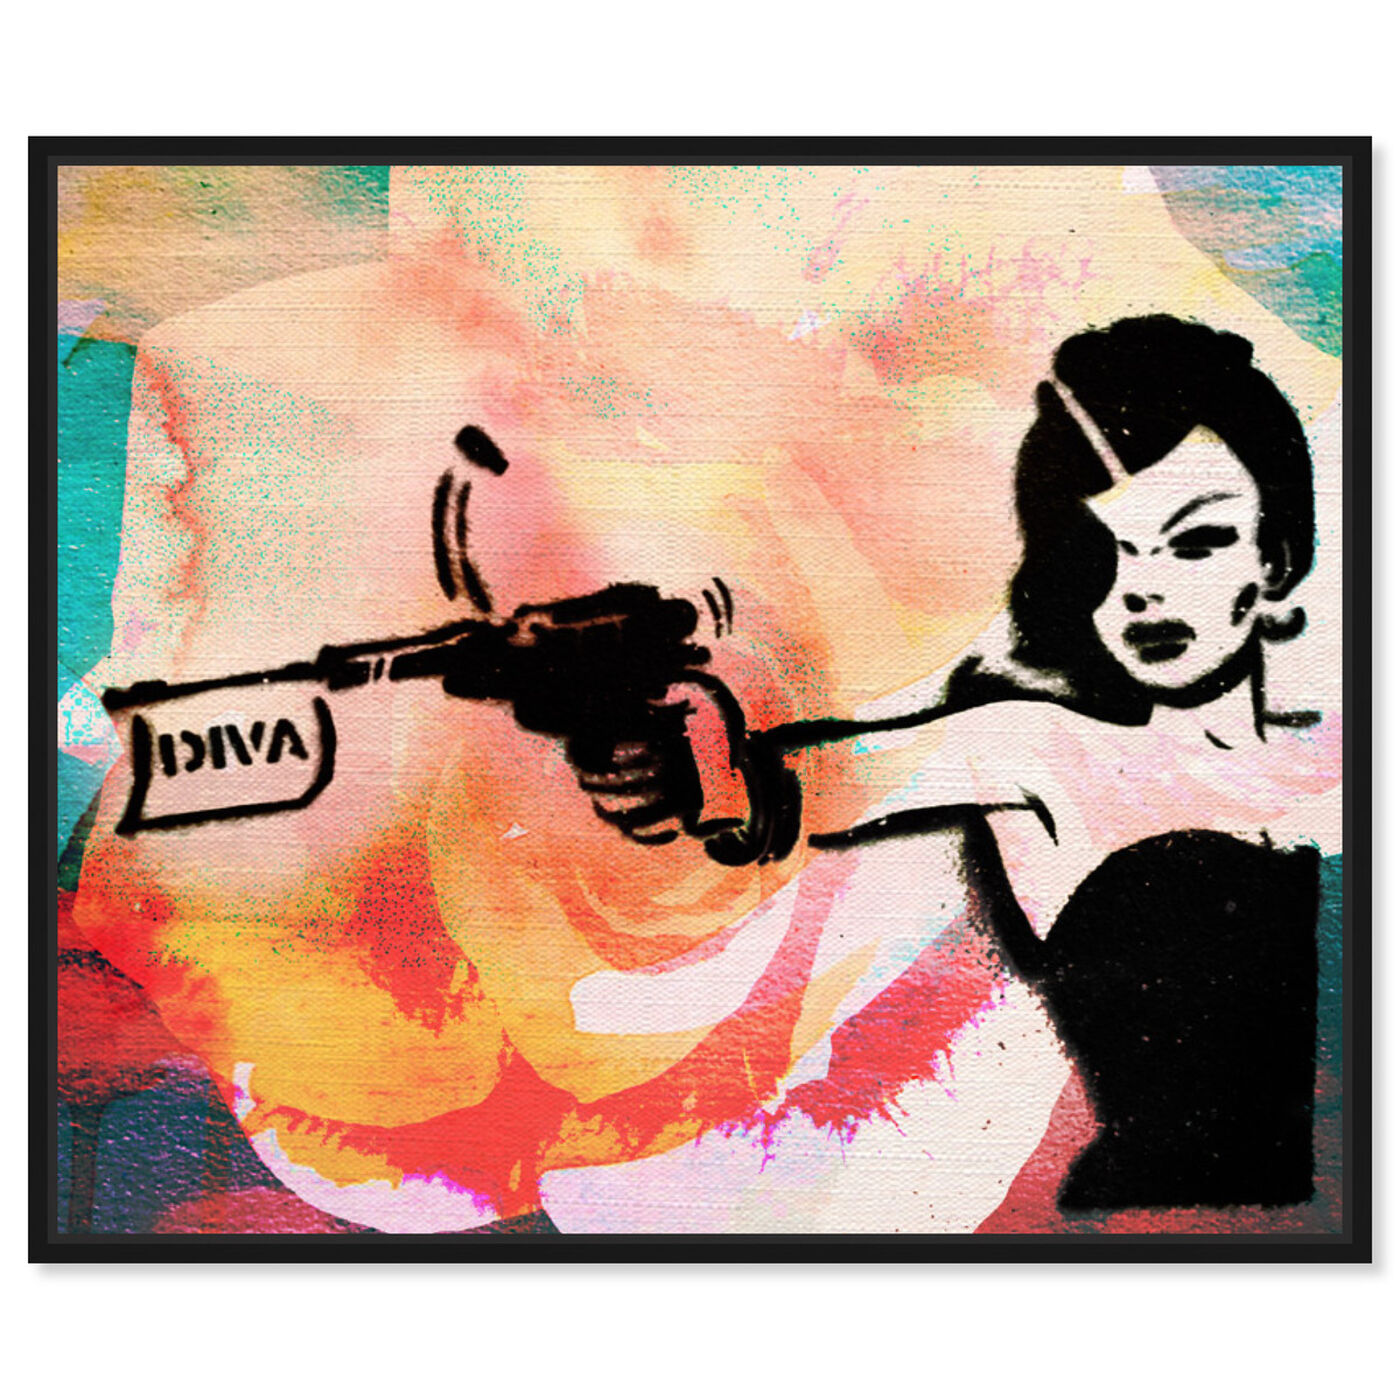 Front view of DIVA featuring entertainment and hobbies and machine guns art.